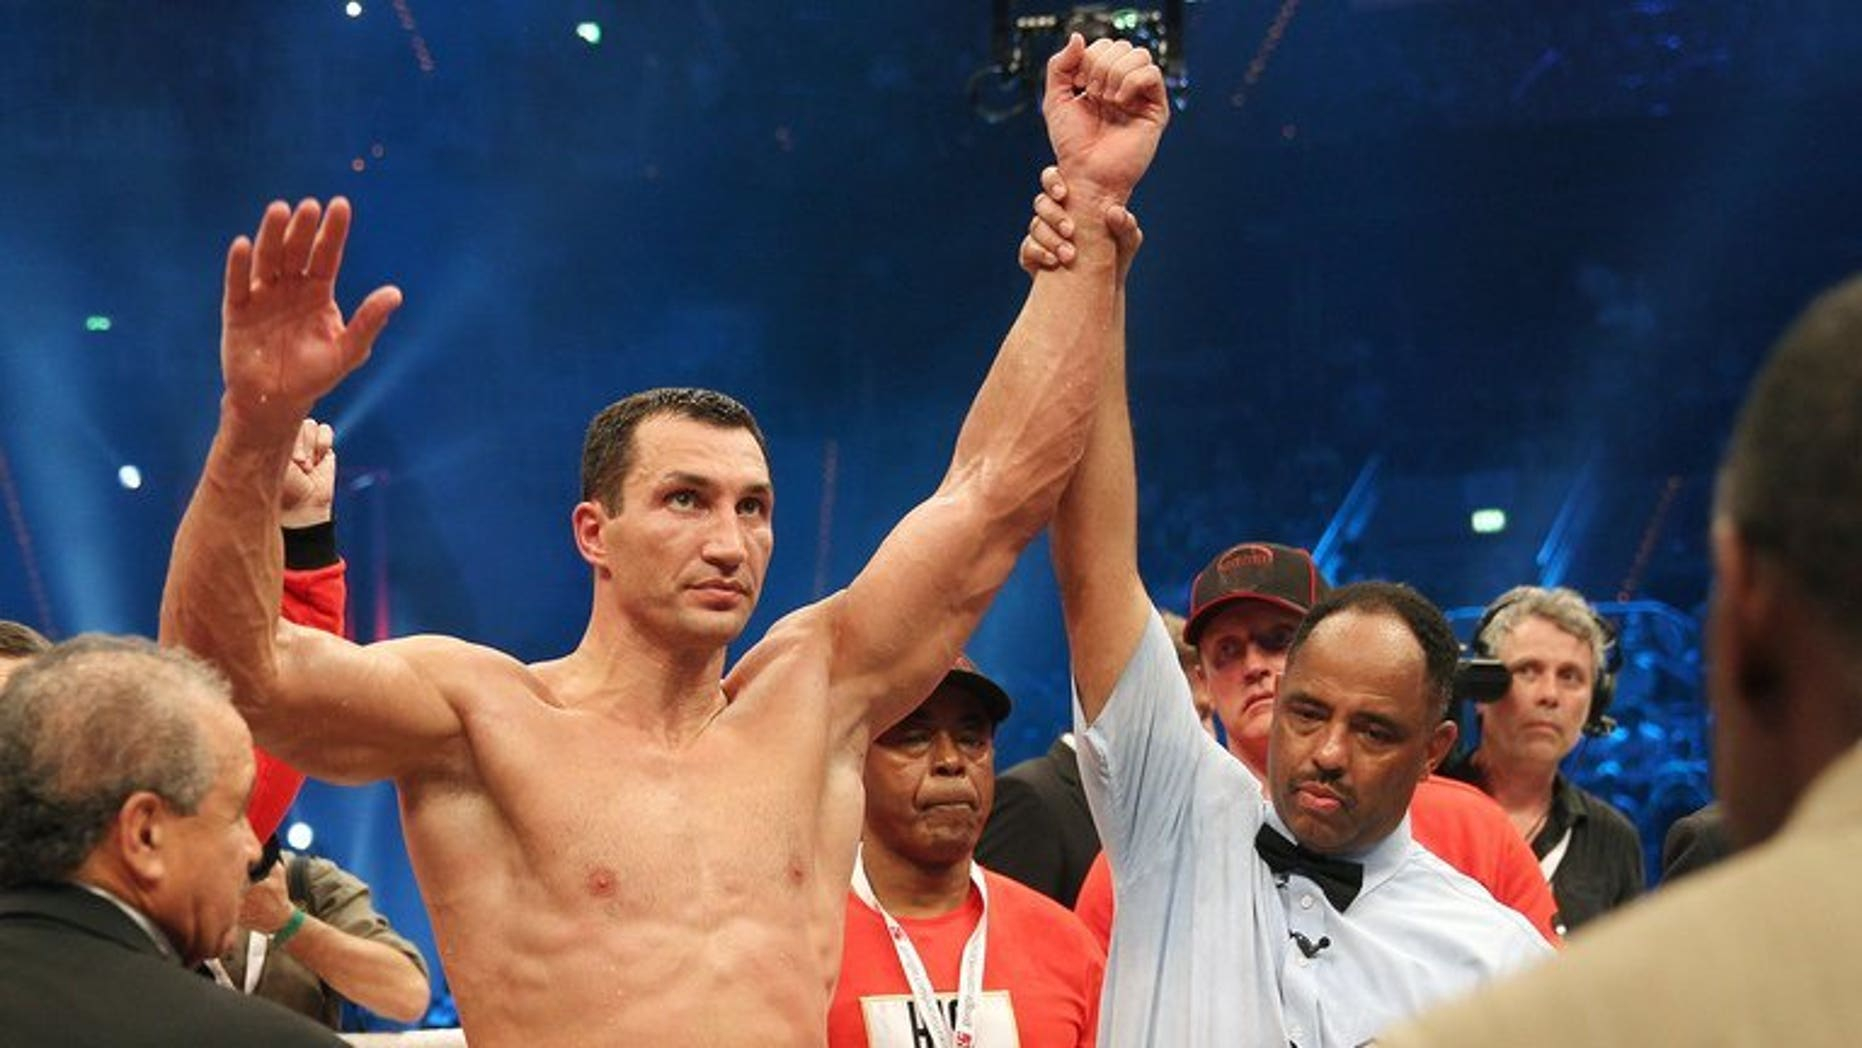 Ukrainian Heavyweight Champion Wladimir Klitschko in Mannheim, Germany on May 4, 2013. Klitschko has been forced to withdraw from his mandatory defence against Canada's Bermane Stiverne after injuring his right hand in training.